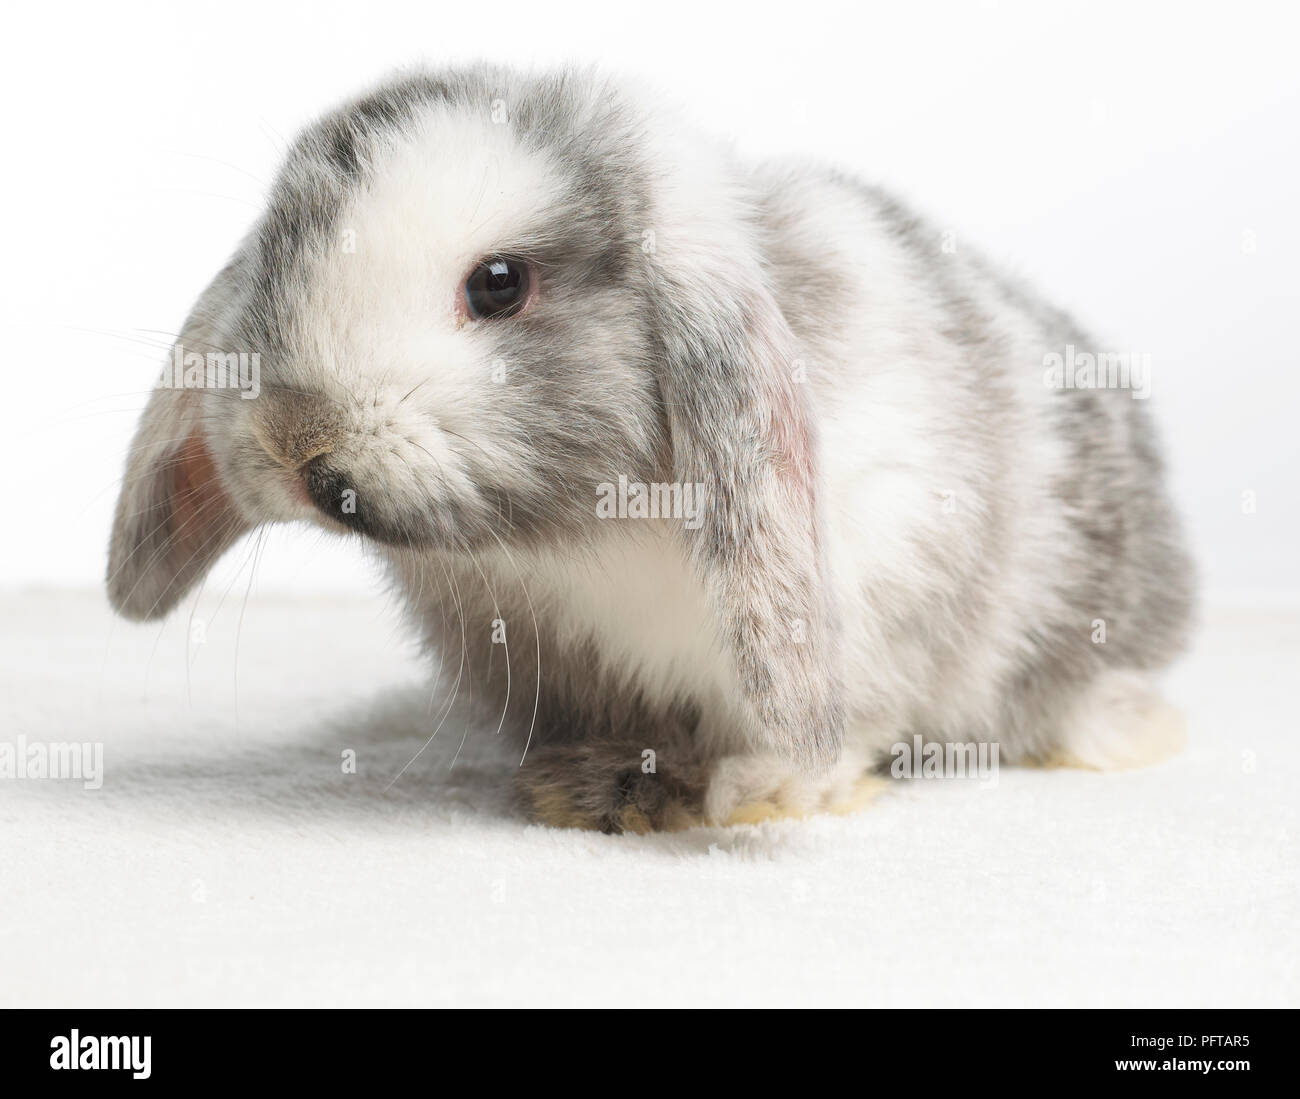 Young Dwarf Lop Rabbit, 4-week-old - Stock Image